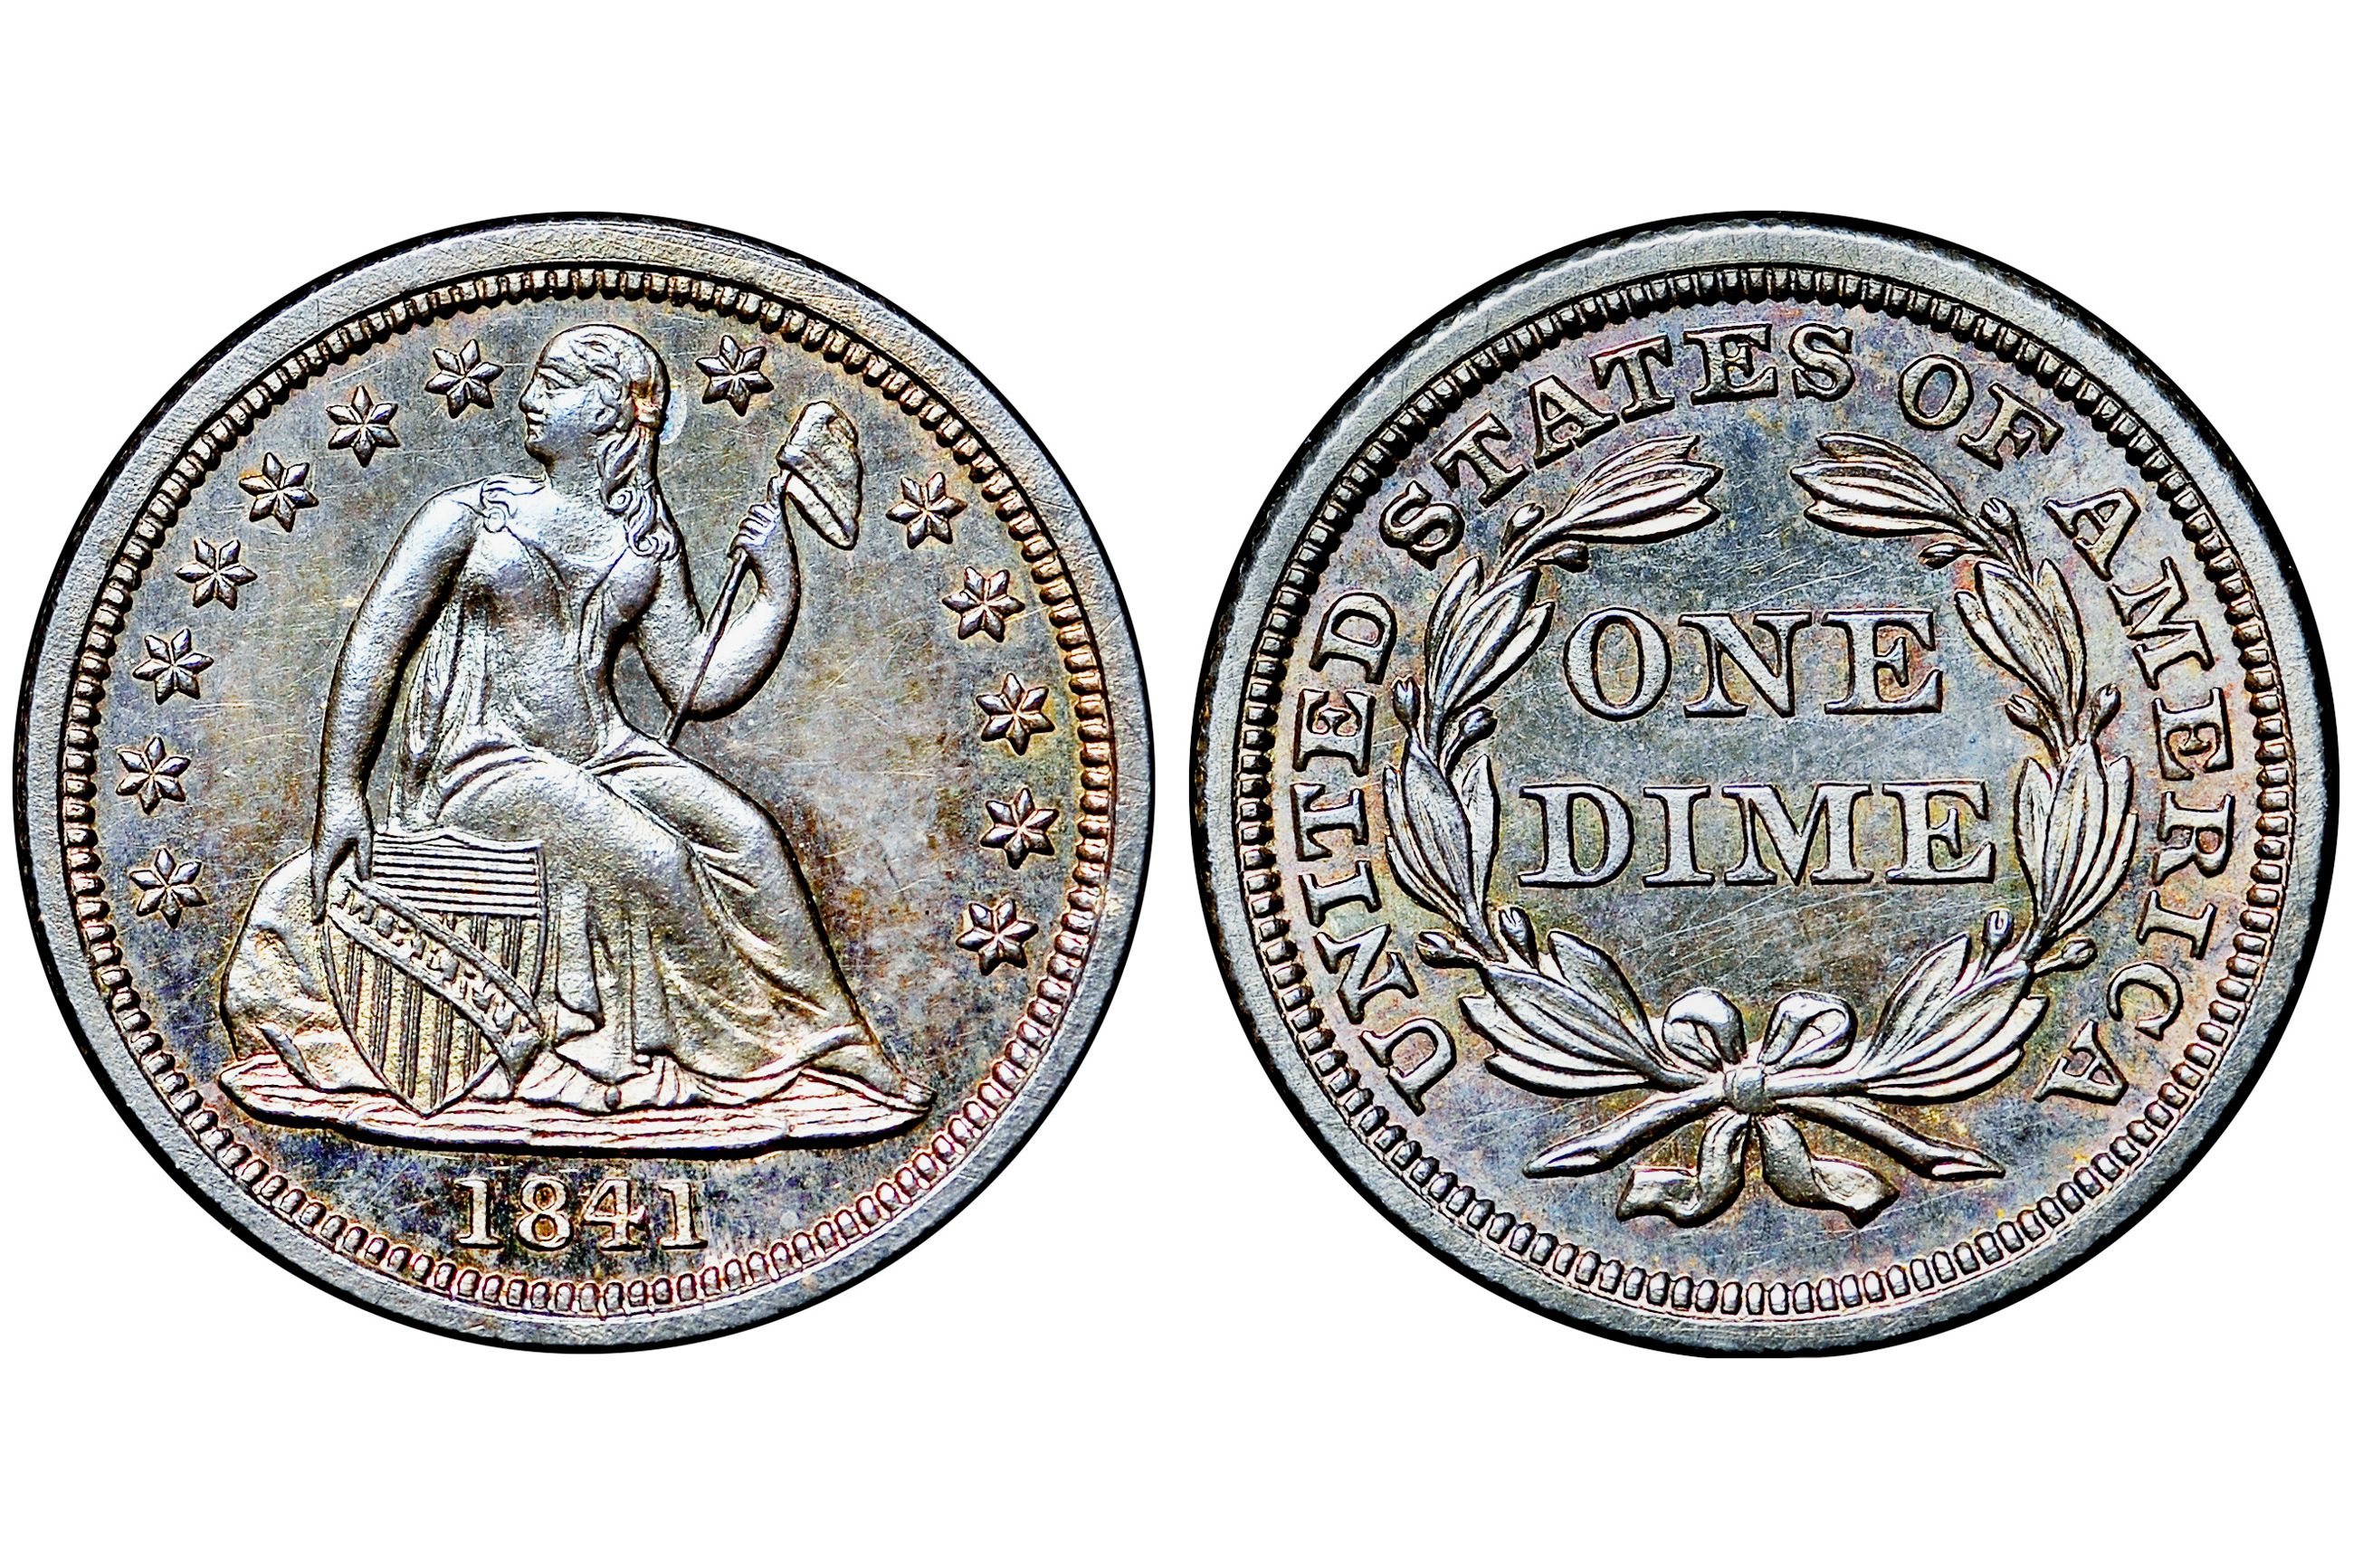 1841 Proof Liberty Seated Dime - No Drapery